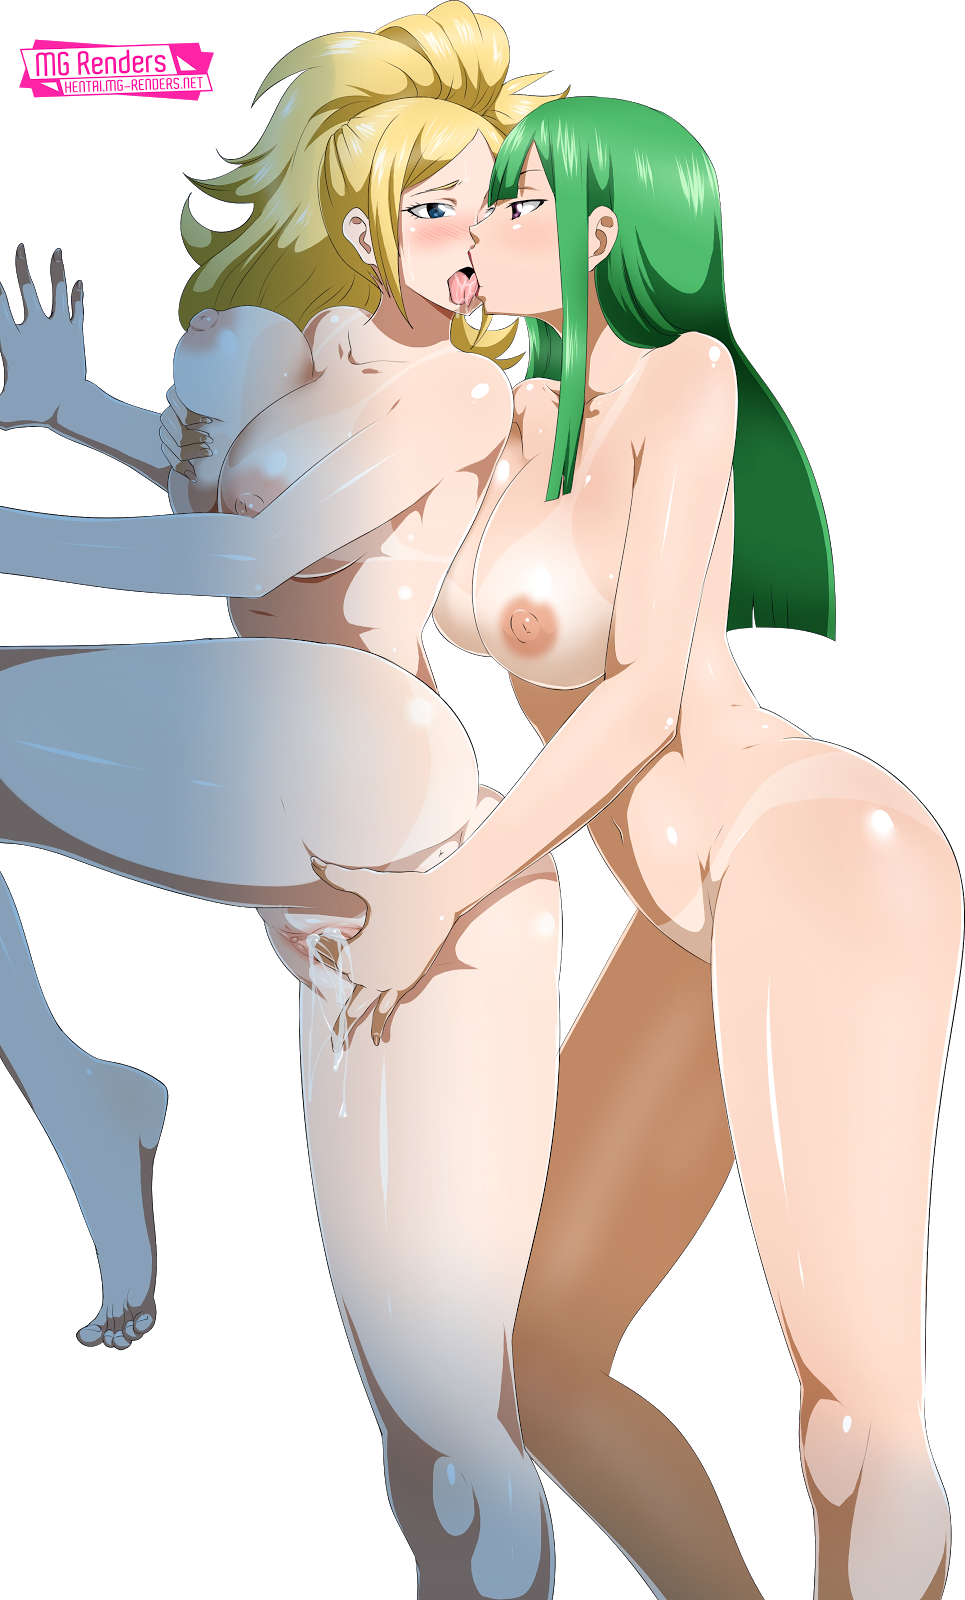 Tags: Anime, Render,  Bisca Connell,  Breast Grab,  Fairy Tail,  Feet,  Huge Breasts,  Jenny Realight,  Kiss,  Nipples,  No bra,  Pussy Juice,  Saliva,  Tongue,  Vagina,  Vaginal Fingering,  Yuri, PNG, Image, Picture